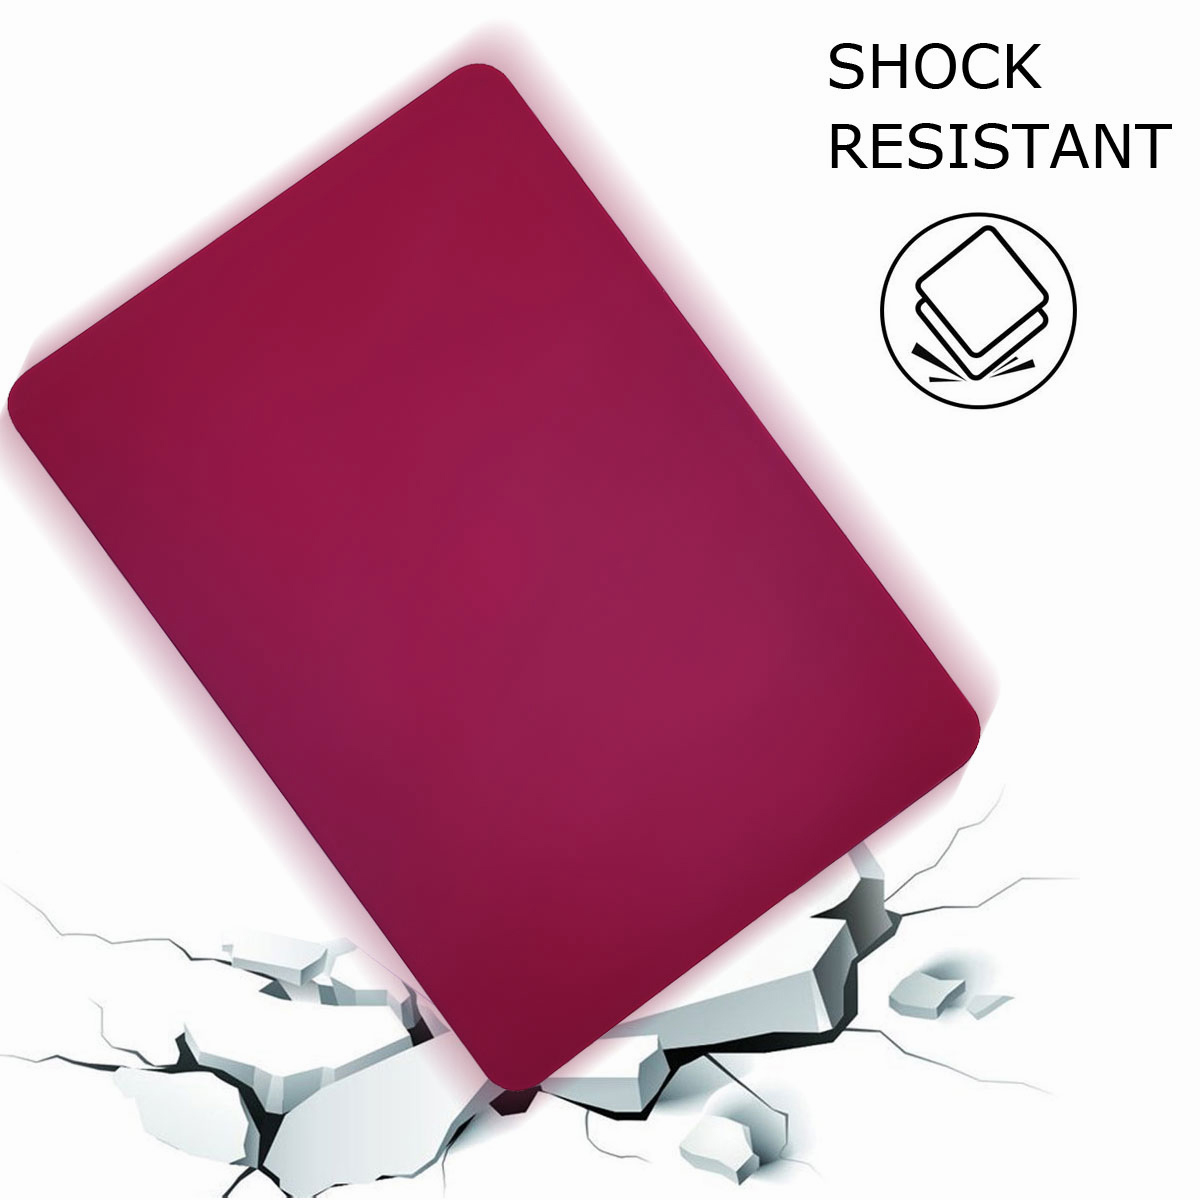 Matte-Rubberized-Hard-Case-Cover-Shell-For-Macbook-Pro-Retina-12-039-039-13-039-039-15-Inch thumbnail 54